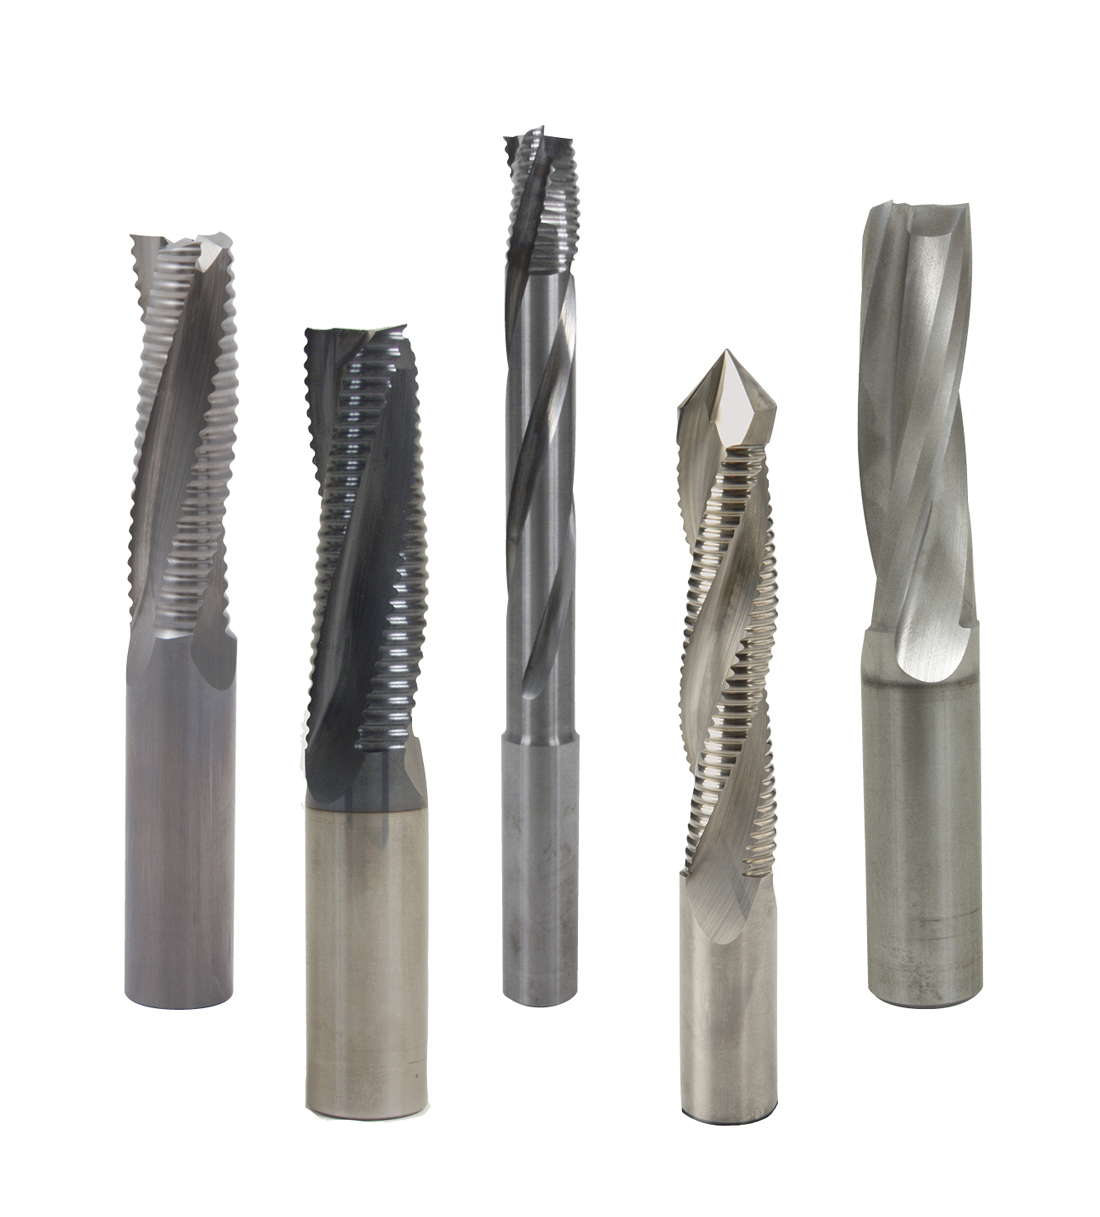 Solid carbide spirals